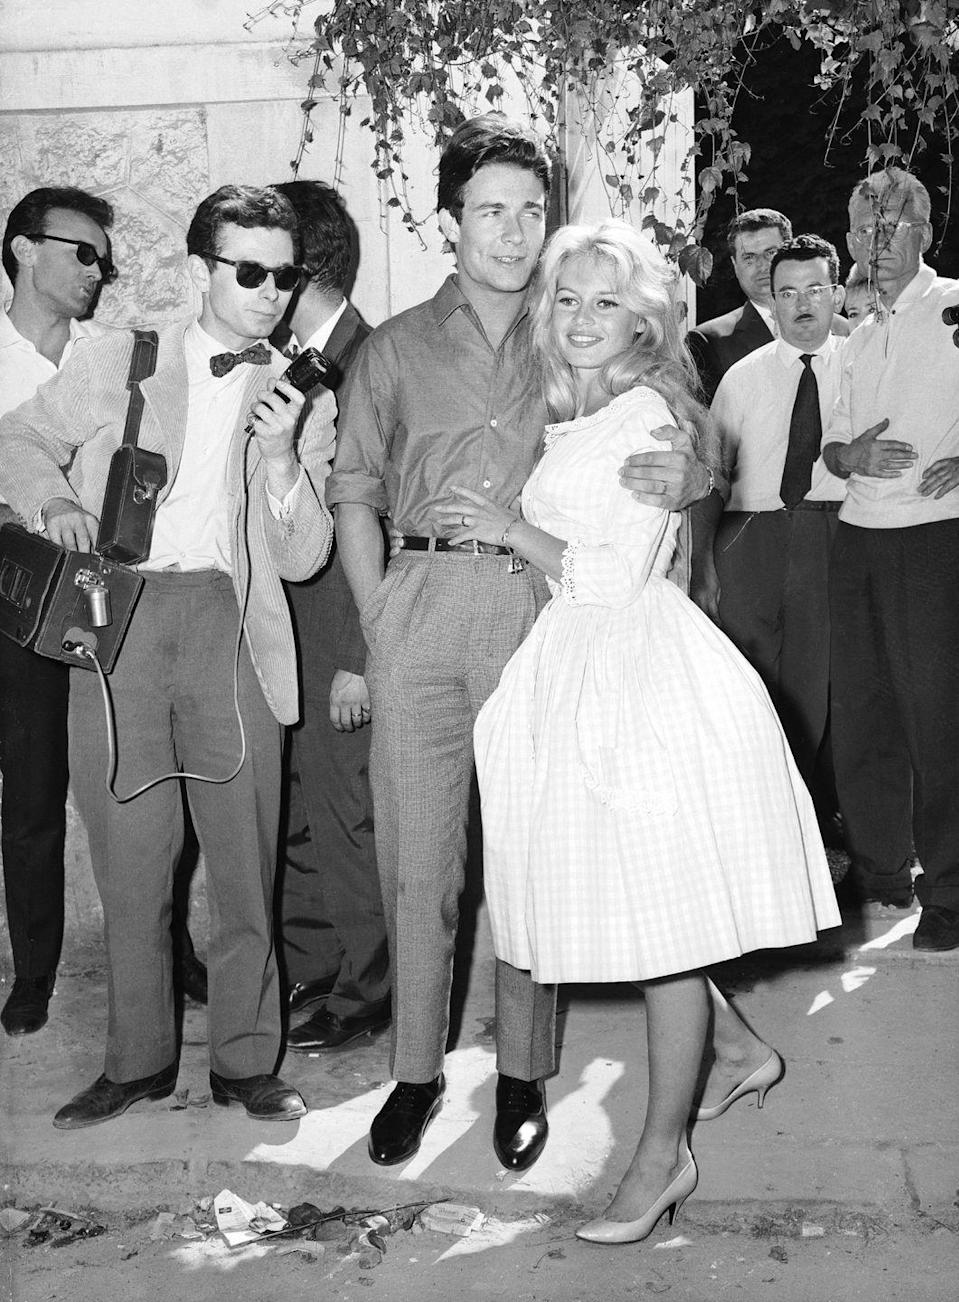 <p>For her second marriage, Brigitte Bardot skipped the wedding gown and big church ceremony. Instead, the actress wore a pink gingham dress for her civil ceremony at city hall with French actor Jacques Charrier in Louveciennes, France. </p>